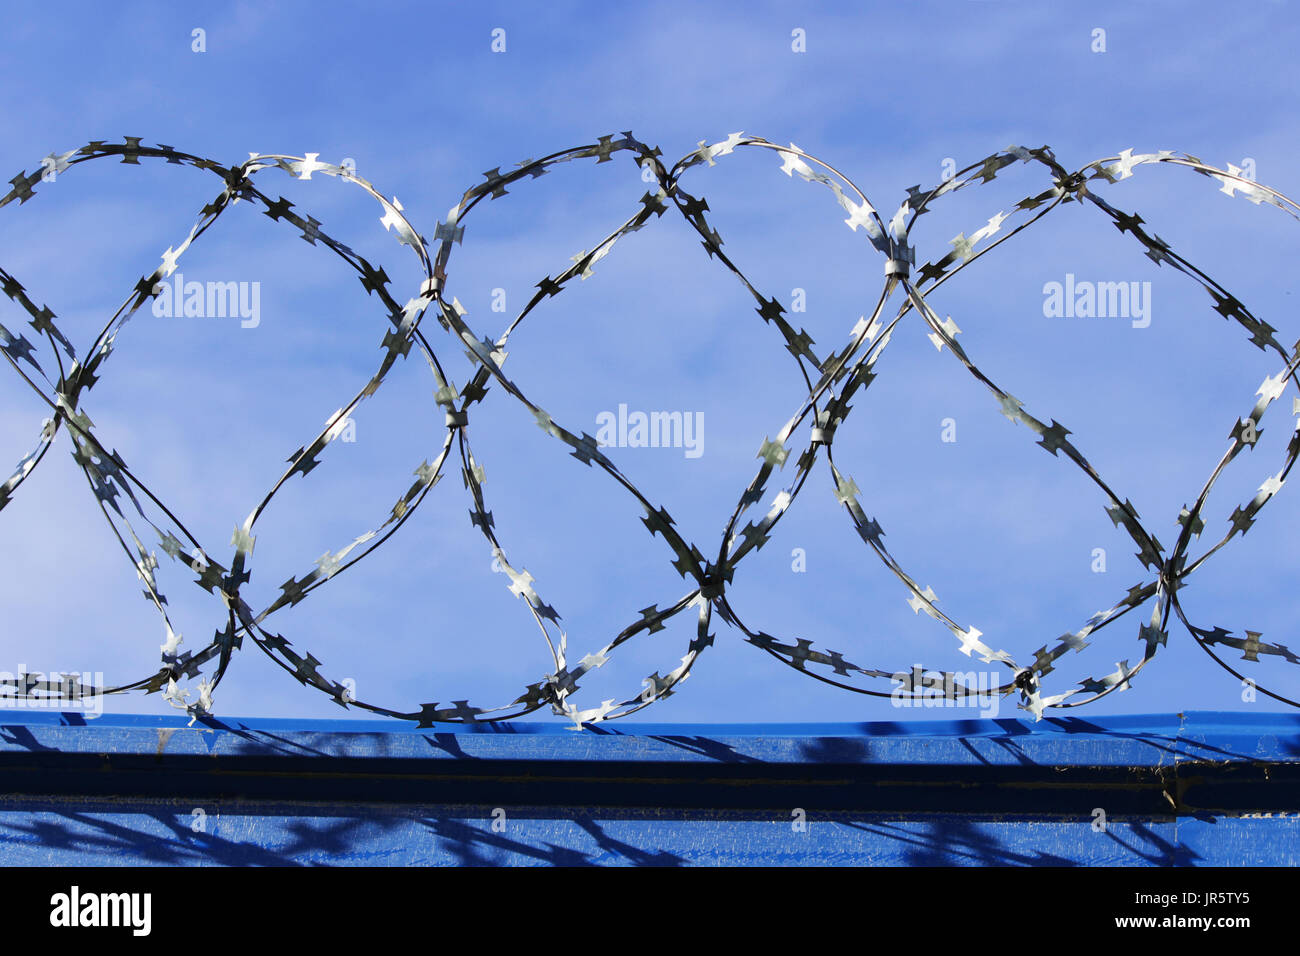 Barbed wire. Barbed wire on fence with blue sky to feel worrying - Stock Image